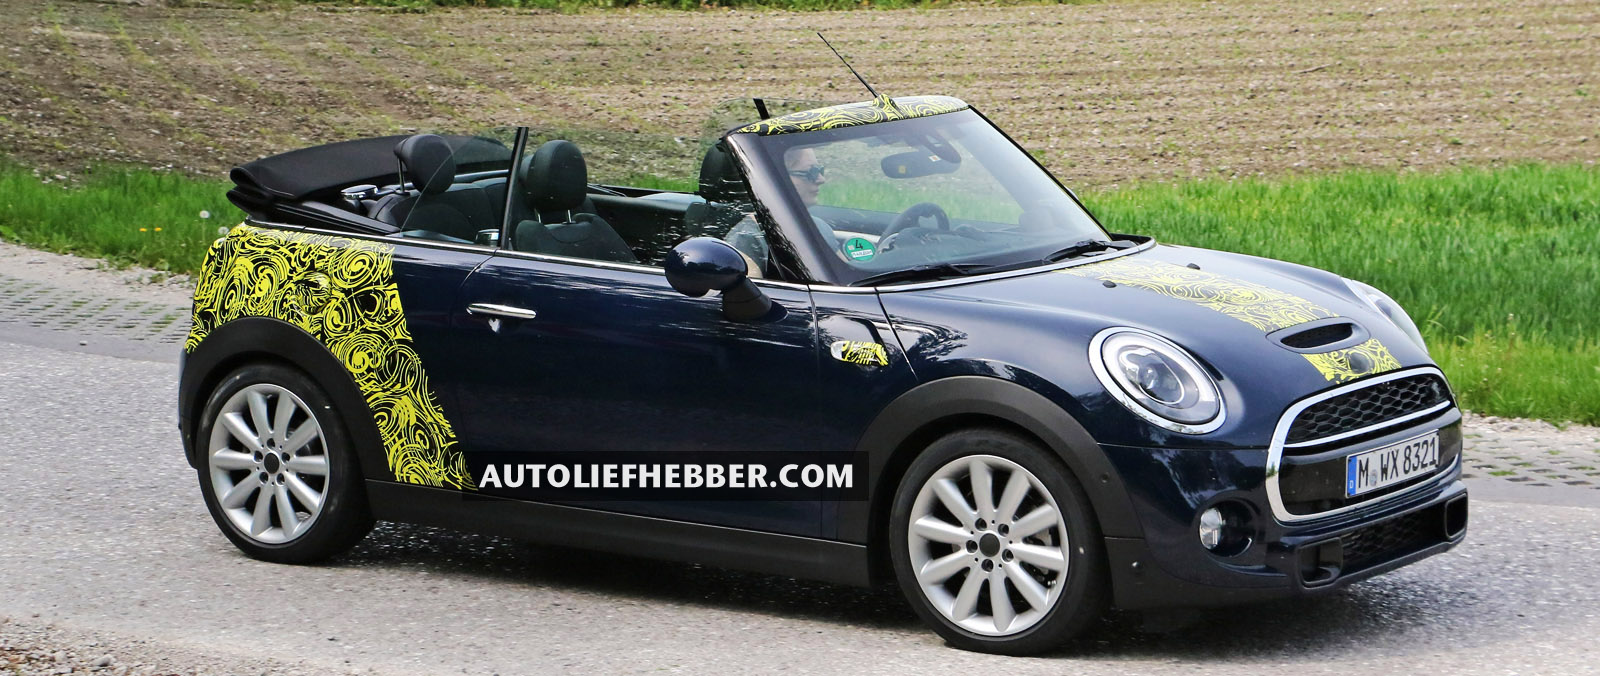 Mini Cooper S test met dak open